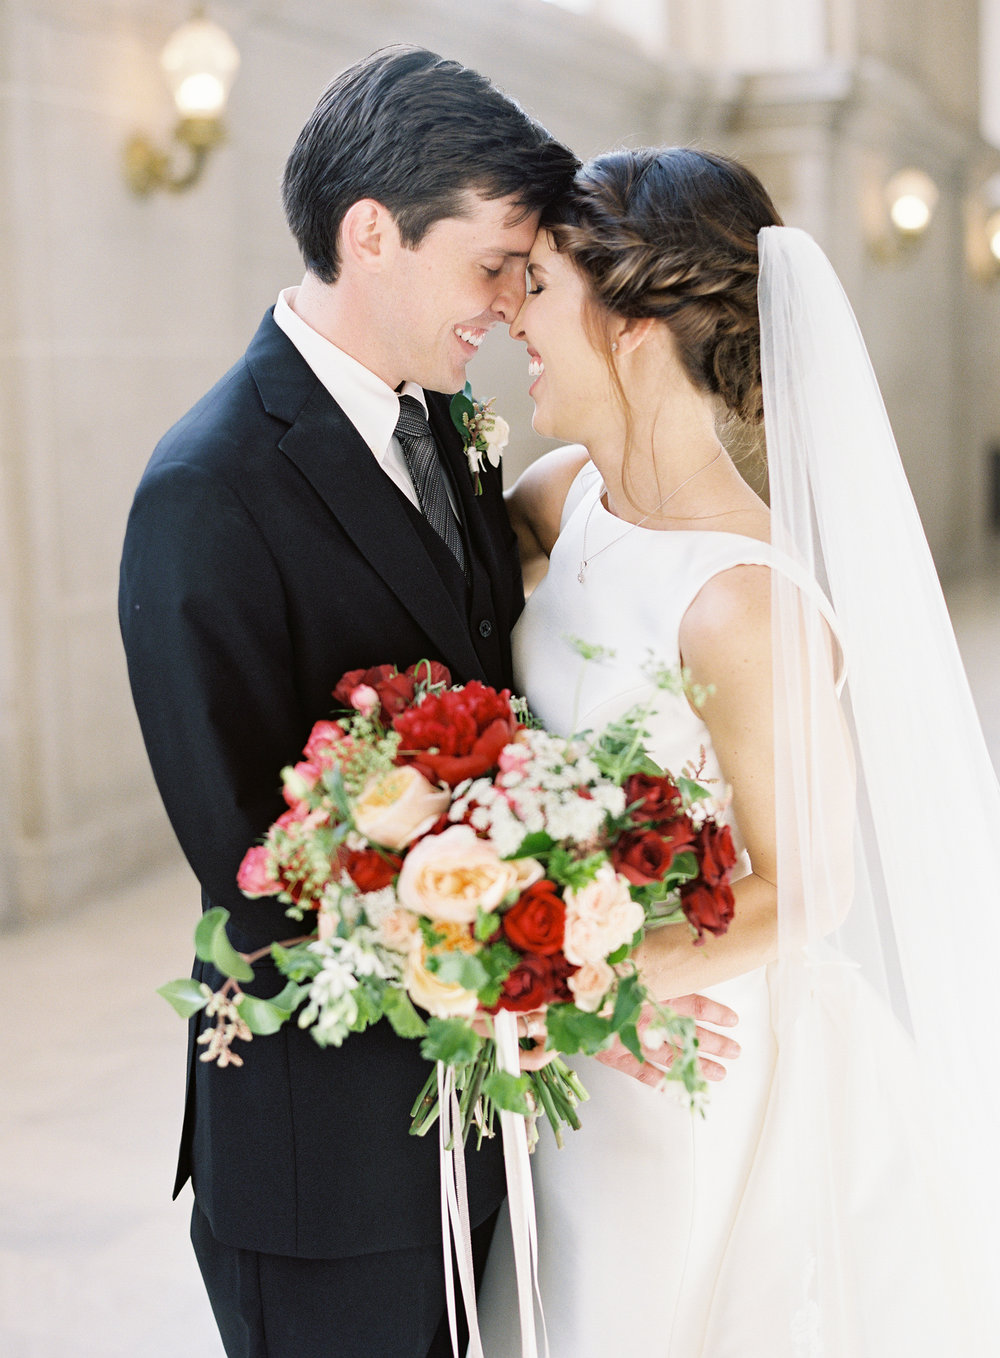 Meghan Mehan Photography - California Wedding Photographer | San Francisco City Hall Wedding 034.jpg